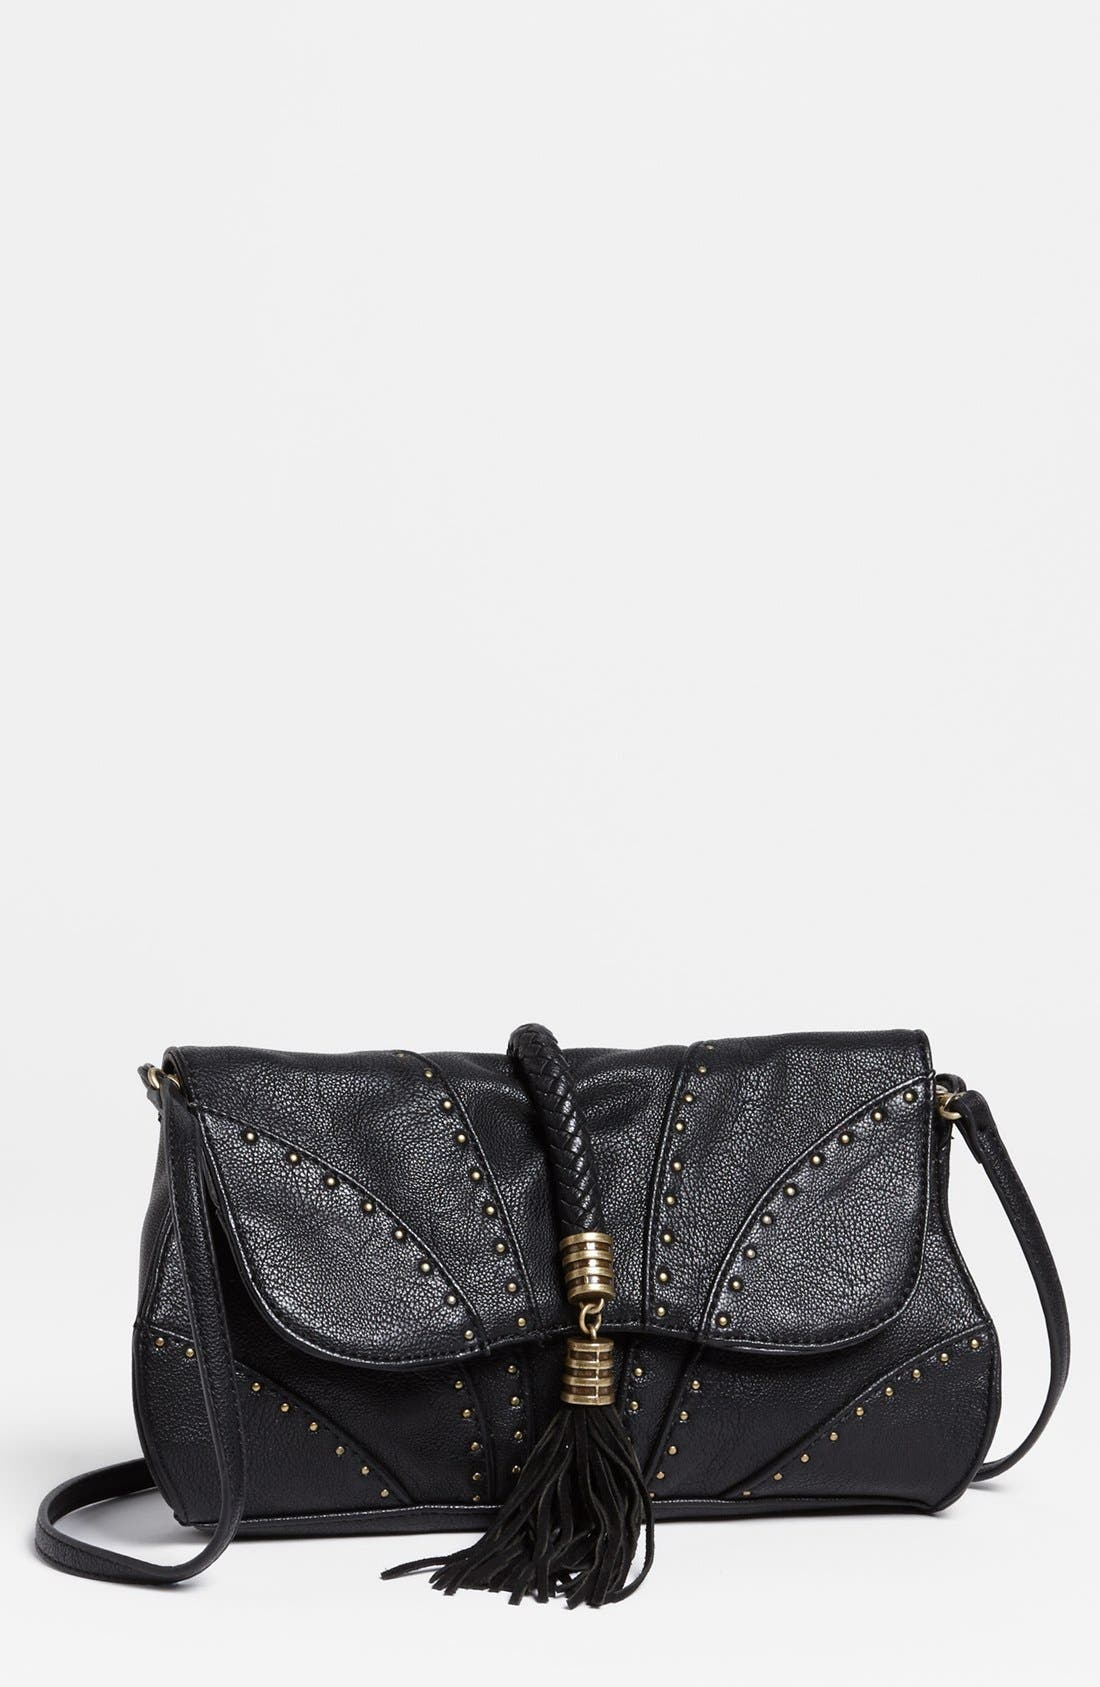 Main Image - Jessica Simpson 'Kenya' Faux Leather Clutch